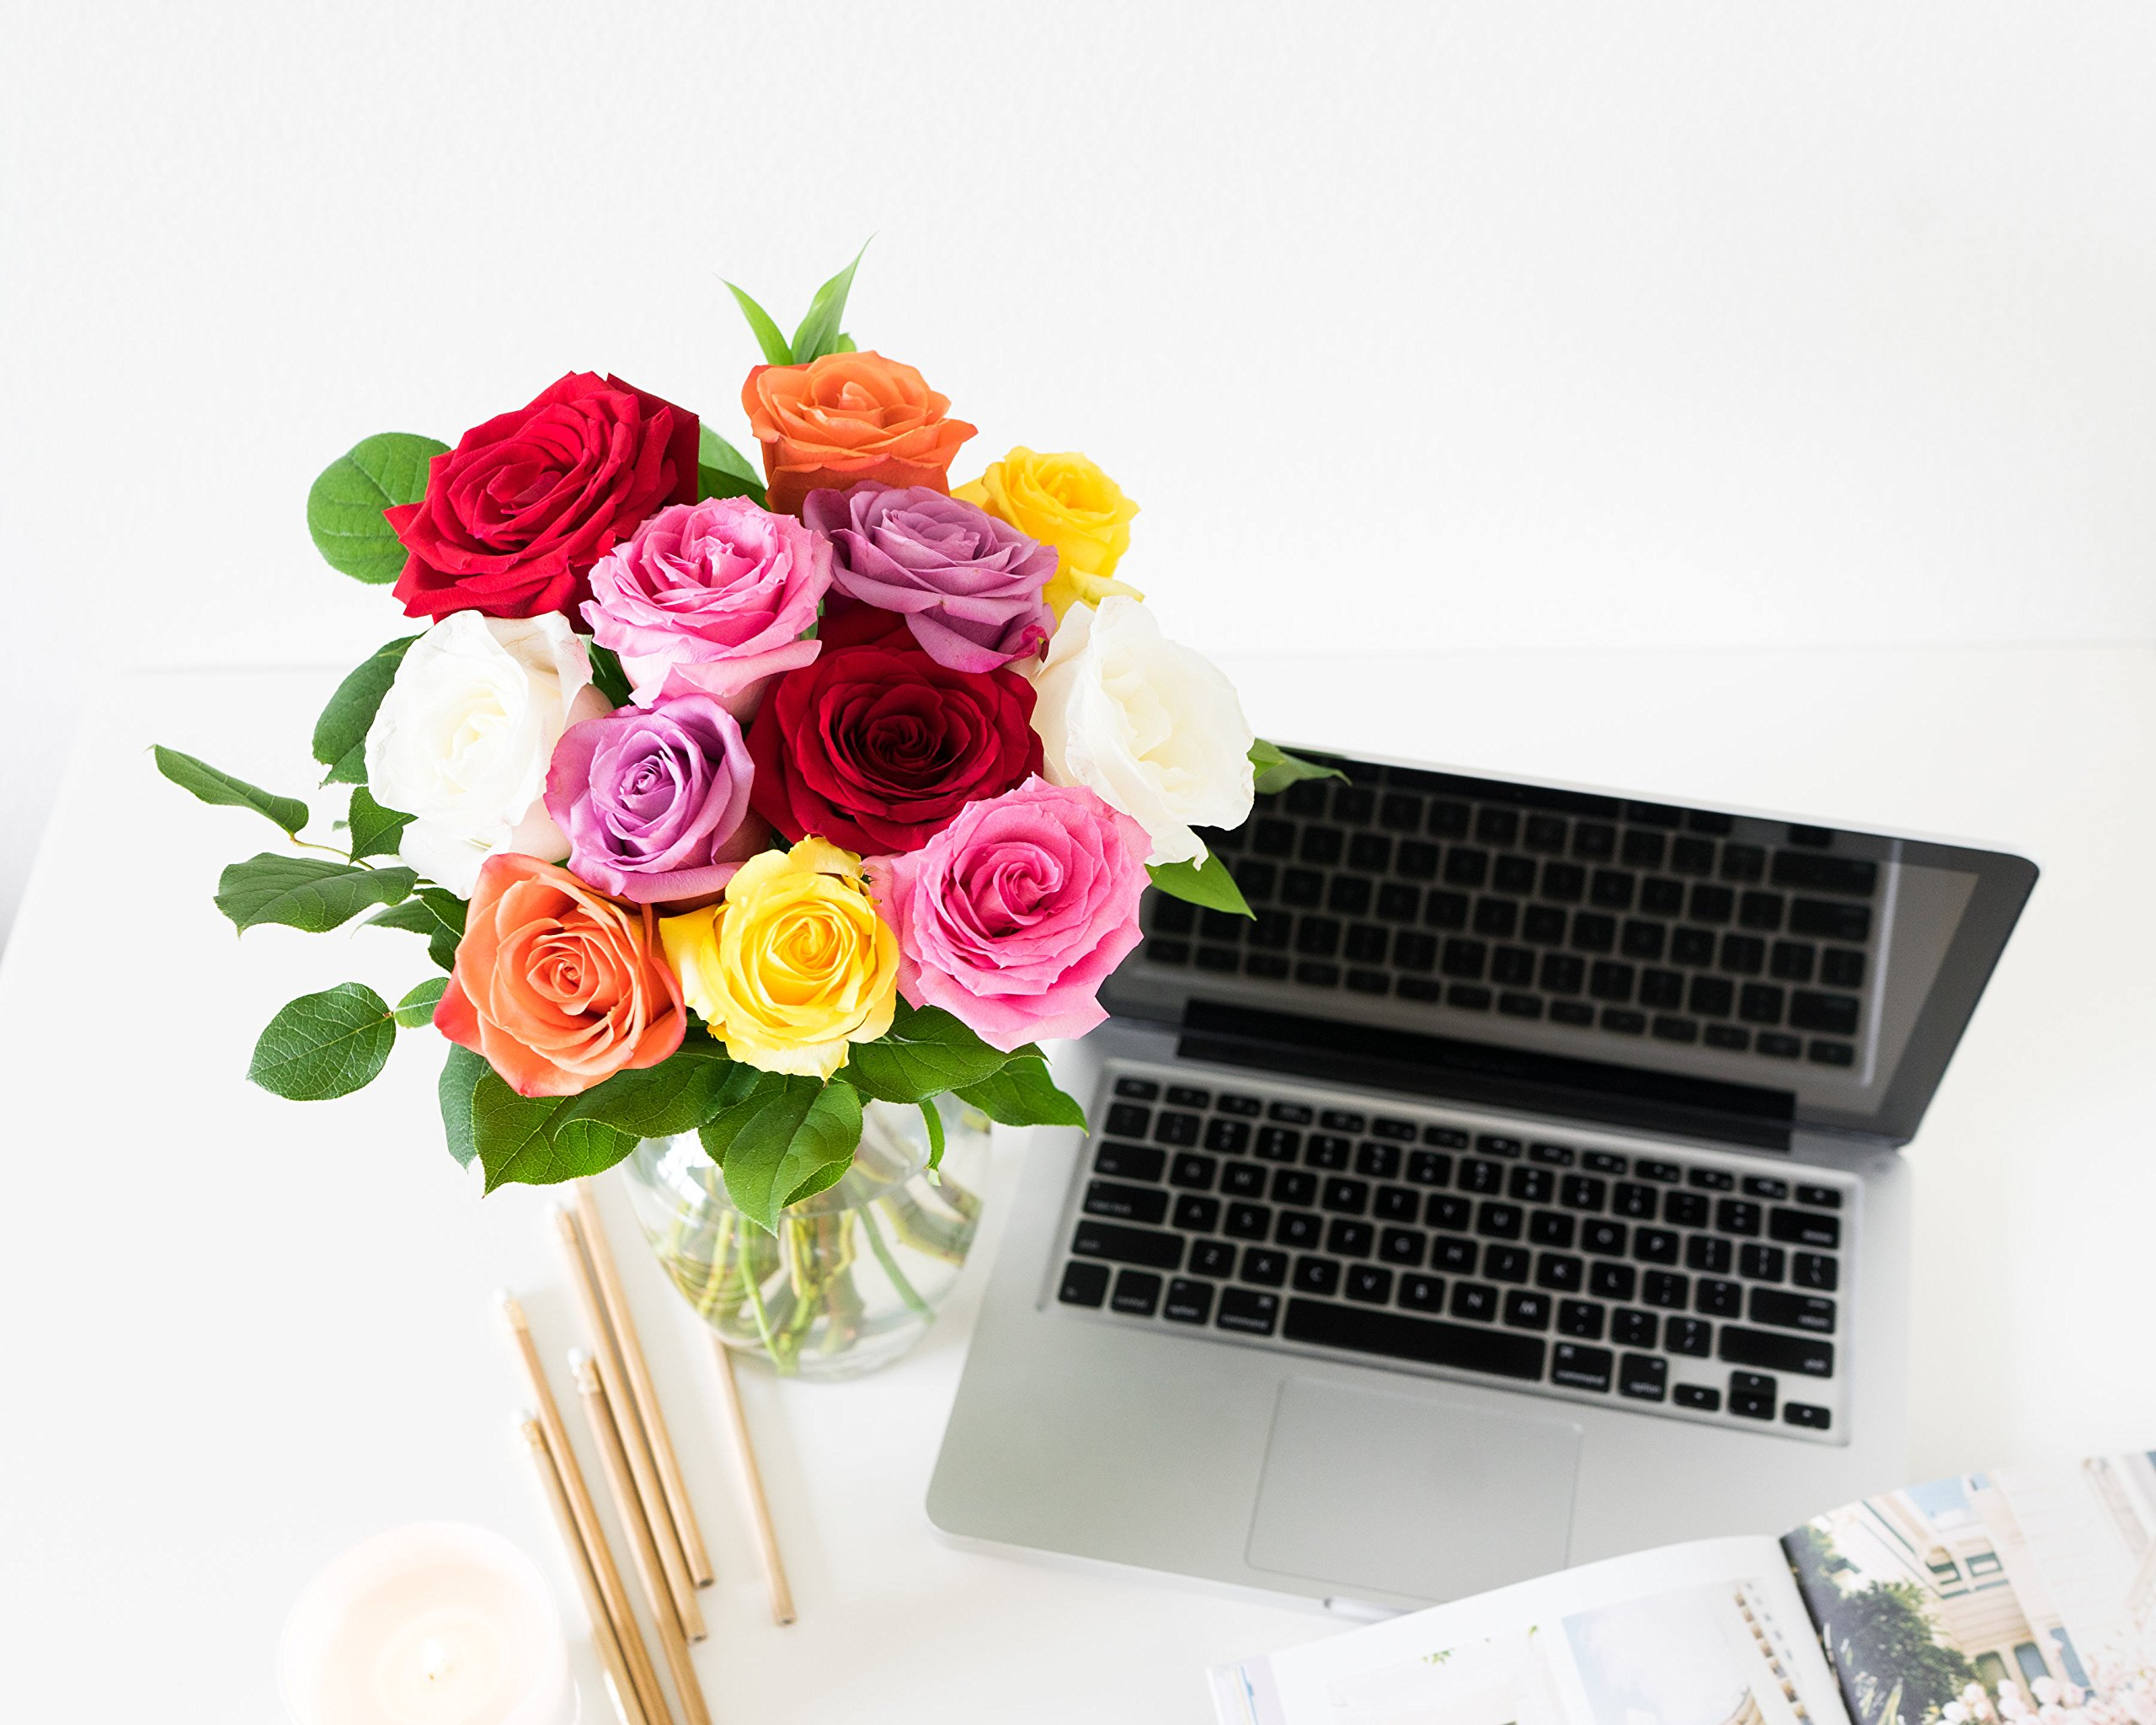 Flowers - One Dozen Multi-Color Roses (Free Vase Included) by From You Flowers